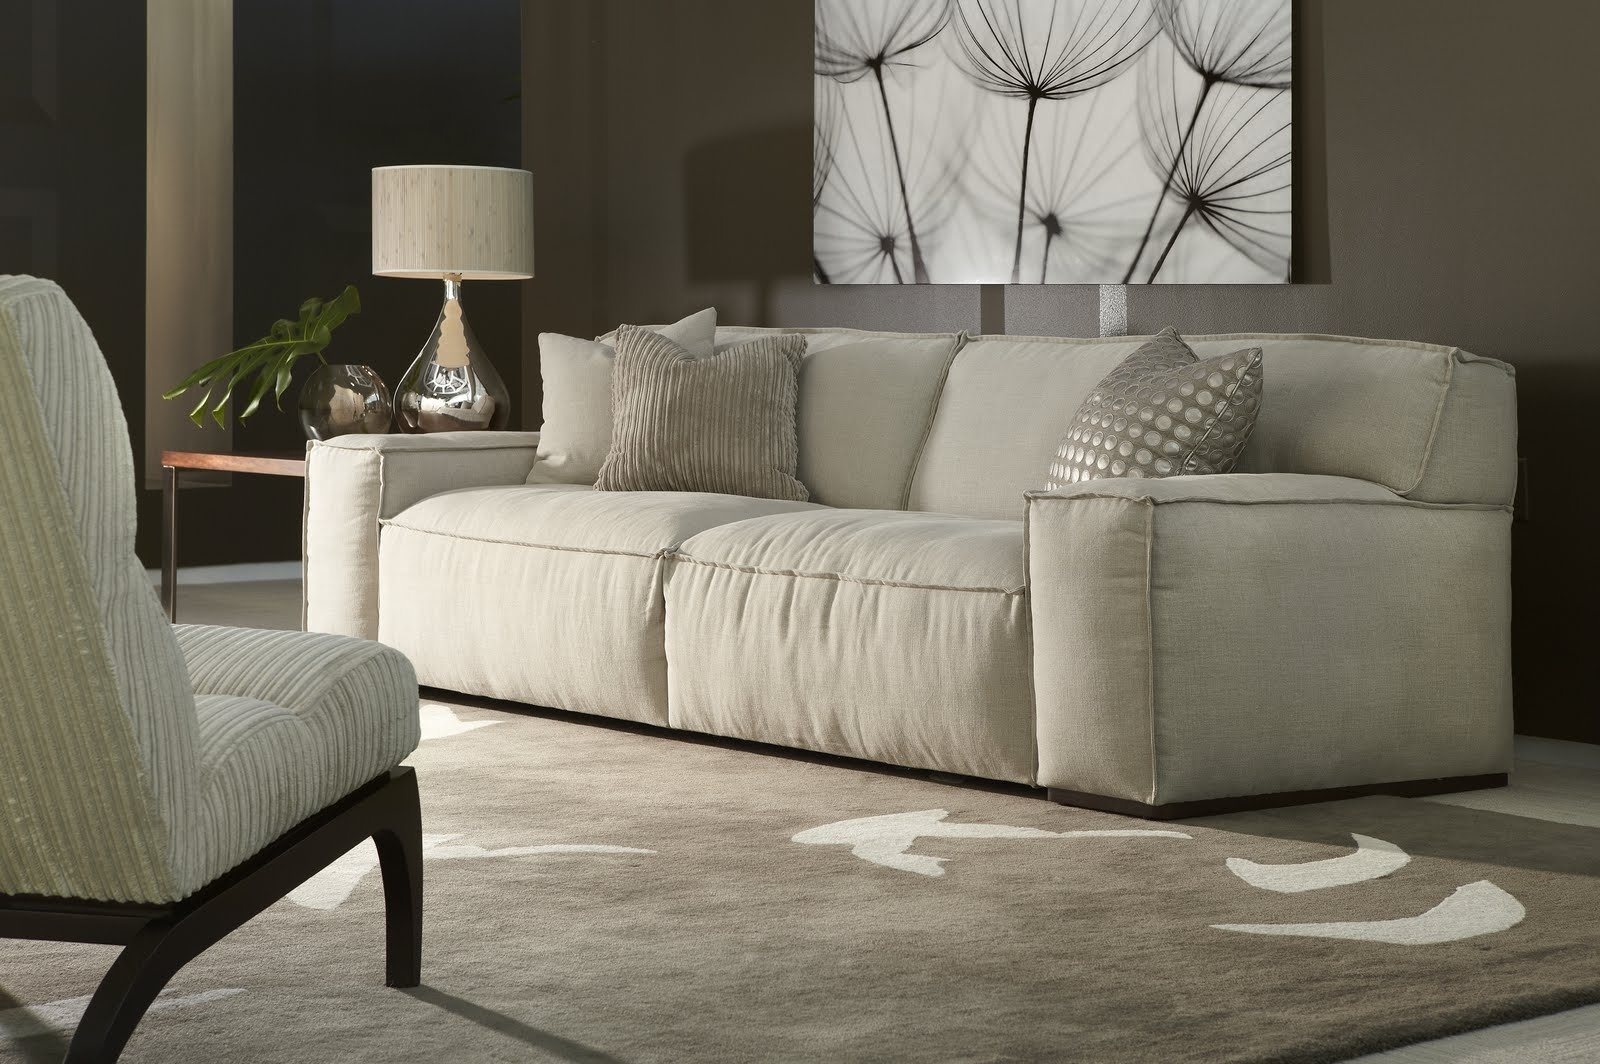 Down Filled Sectional Sofas With Regard To Well Known Sofa : Down Filled Sofa With Chaise Down Filled Sofa Sale Down (View 5 of 15)